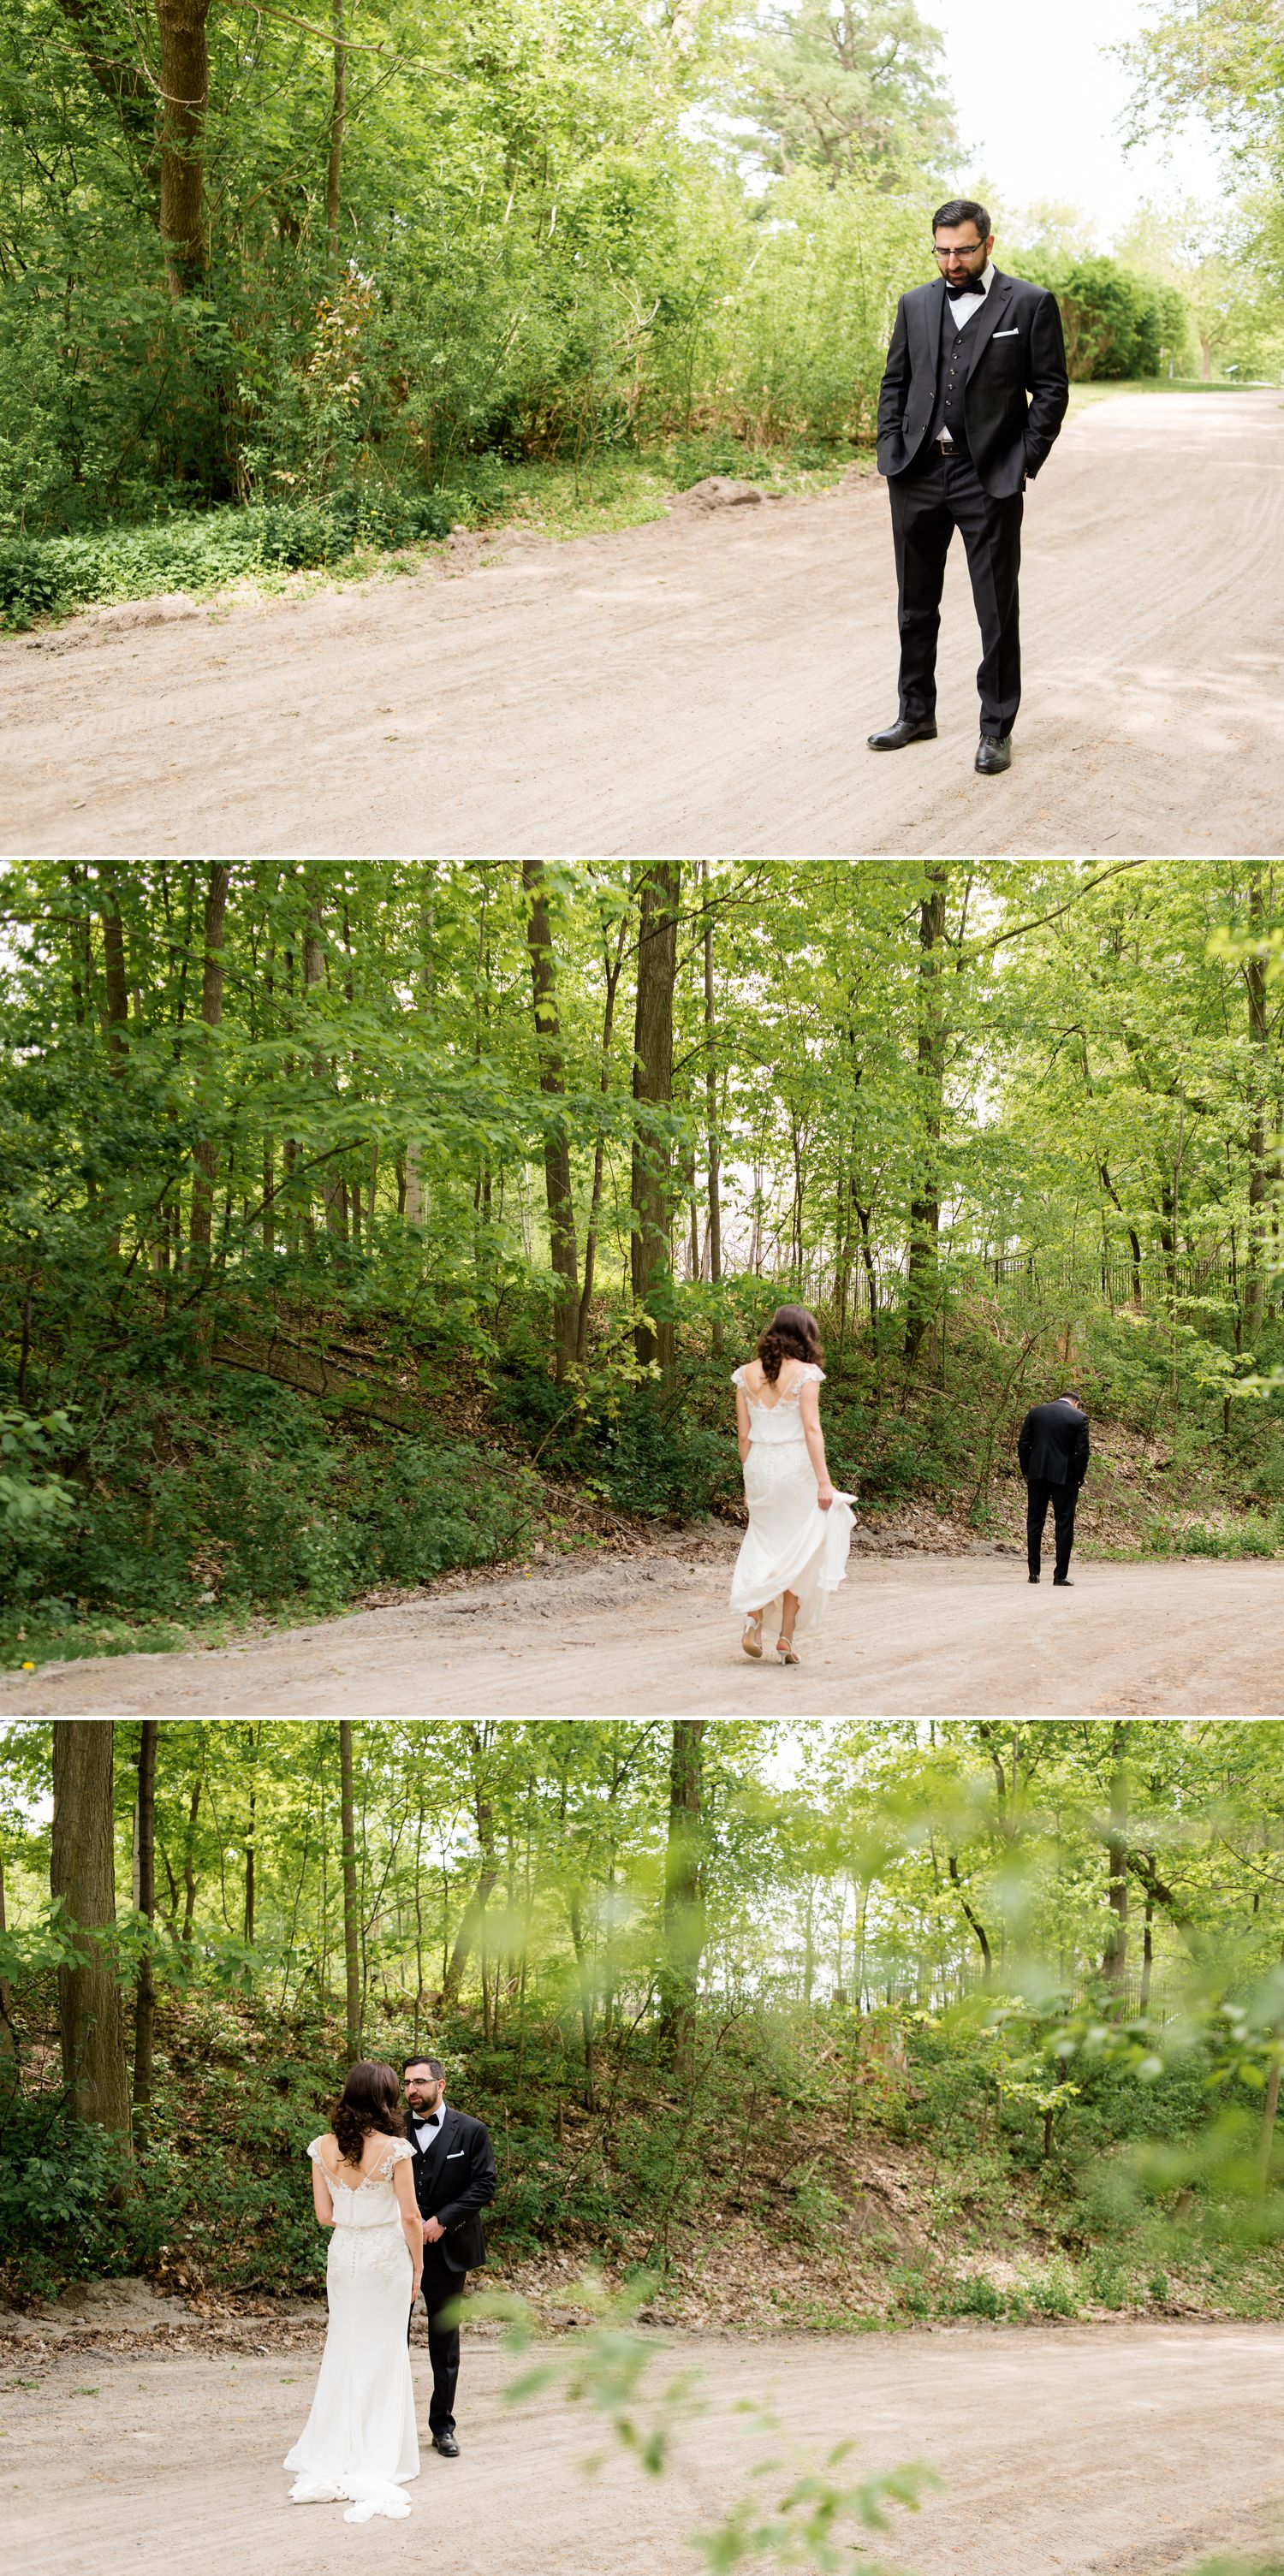 The Bride and Groom during their first look at Billings Estate